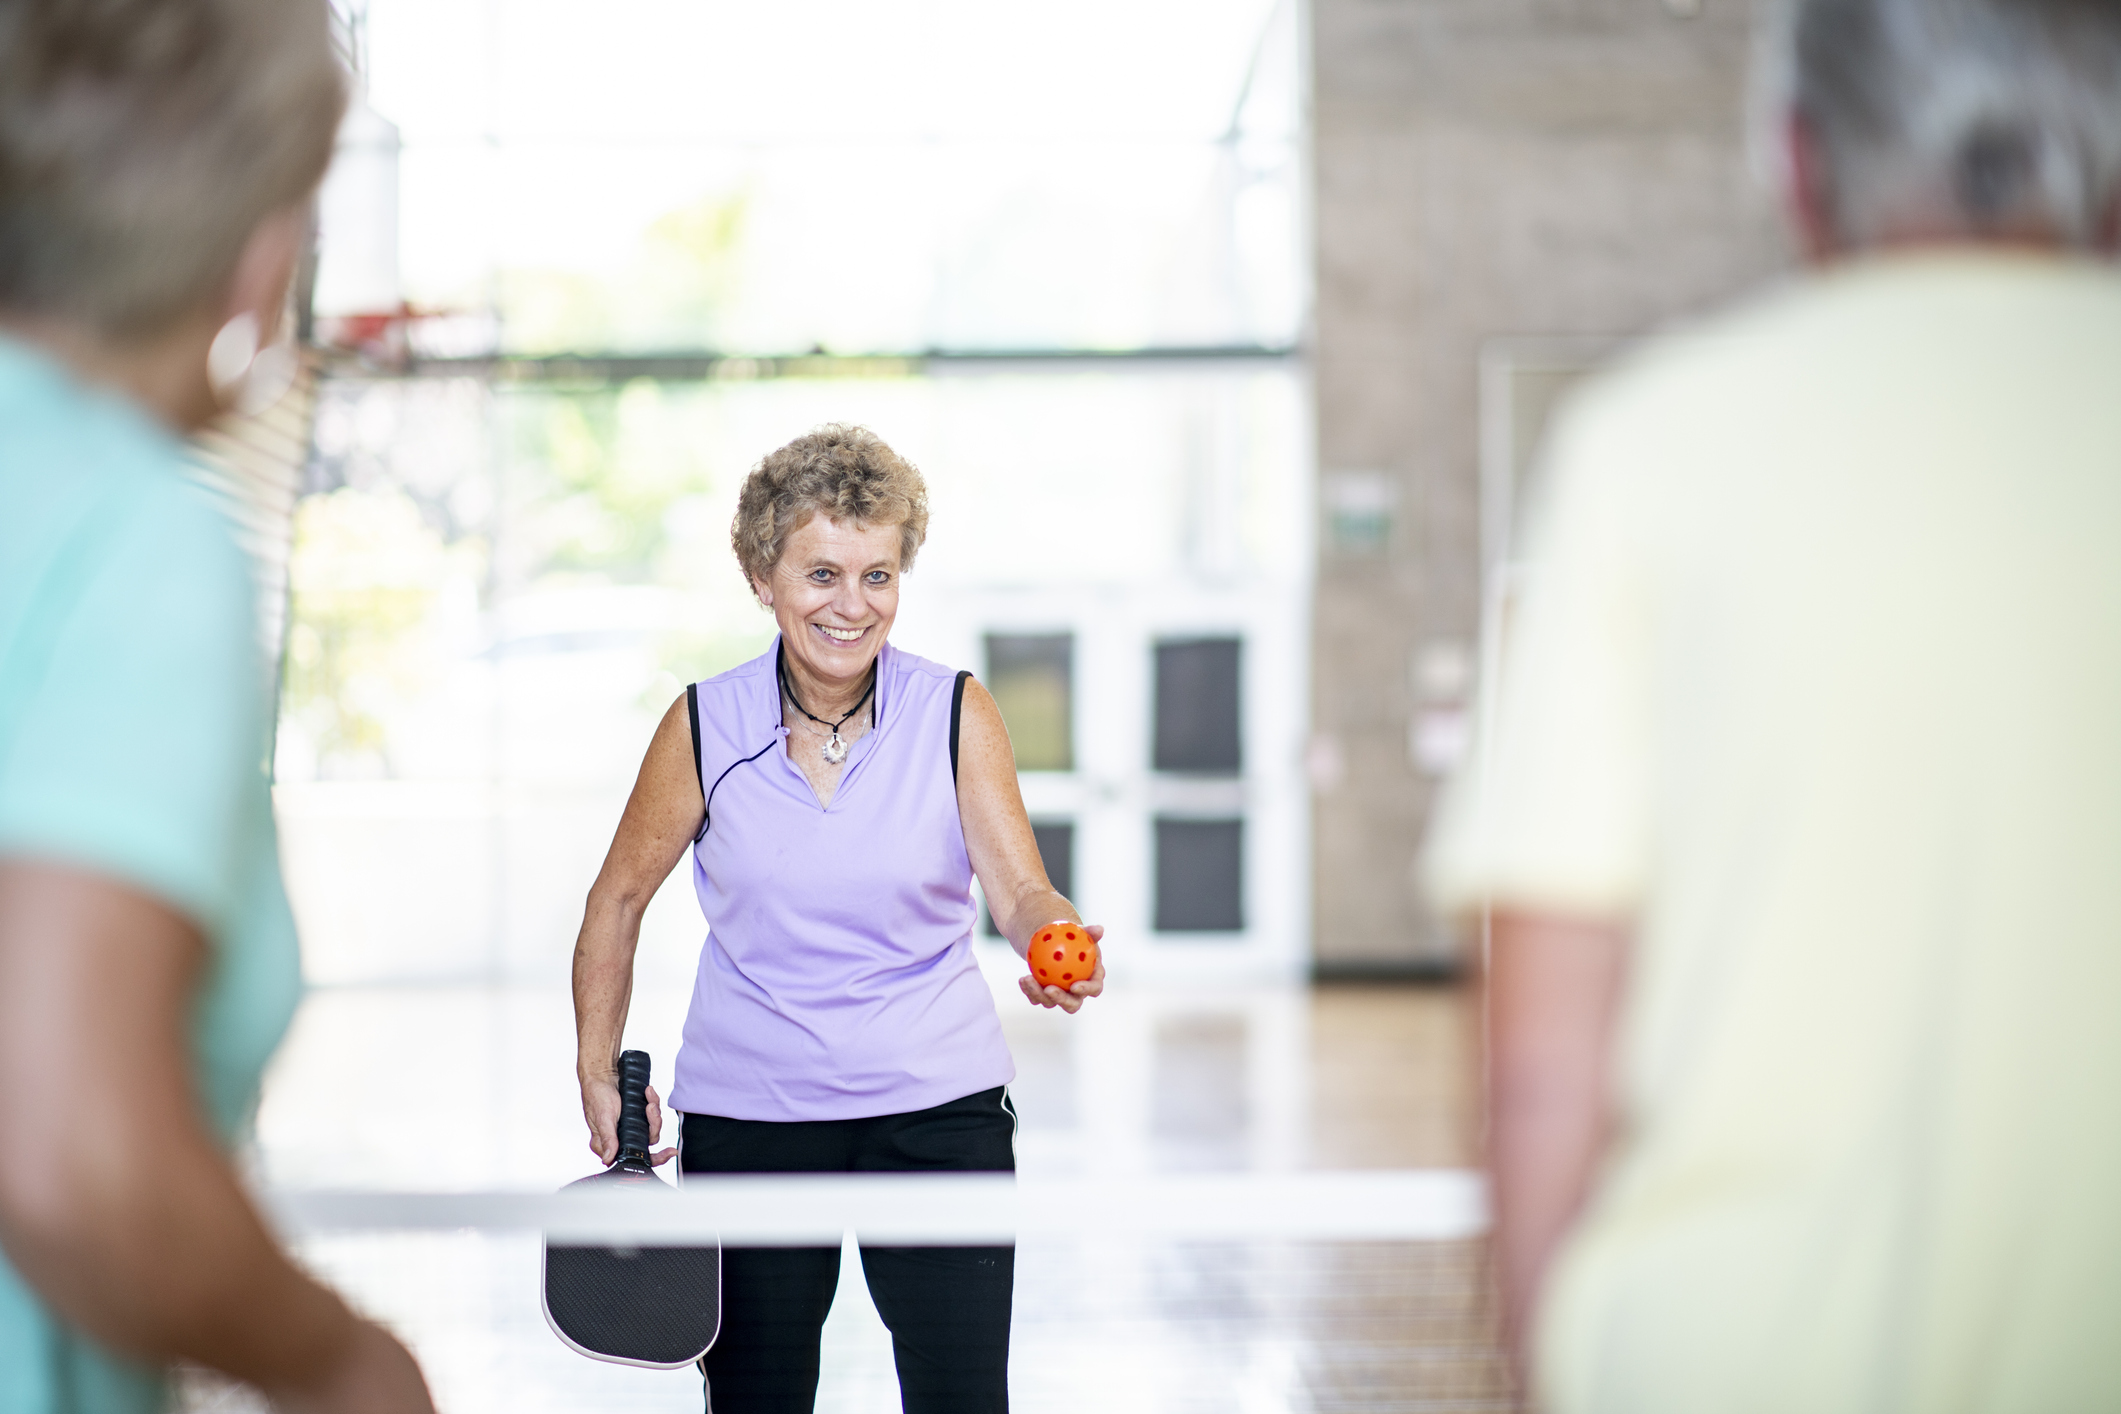 A group of seniors are playing pickleball in a fitness center. One woman is about to serve.